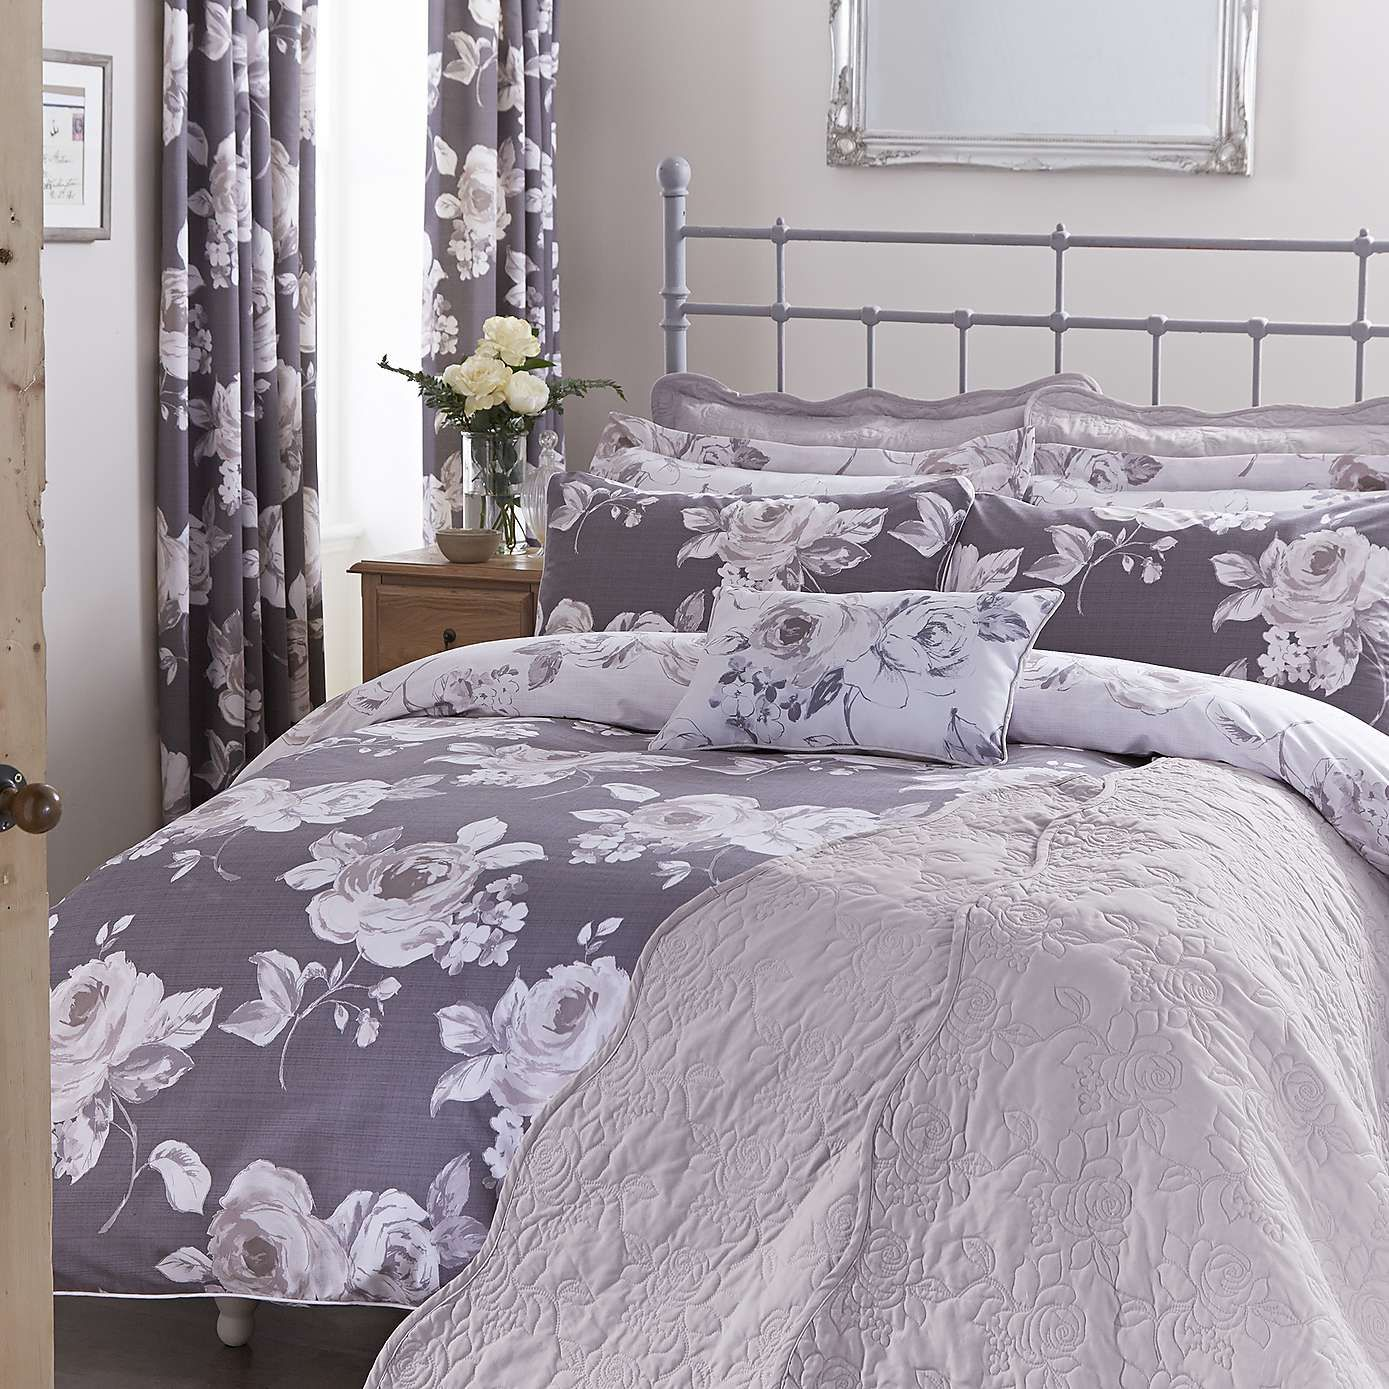 Charcoal Pretty Vintage Bed Linen Collection - Dunelm